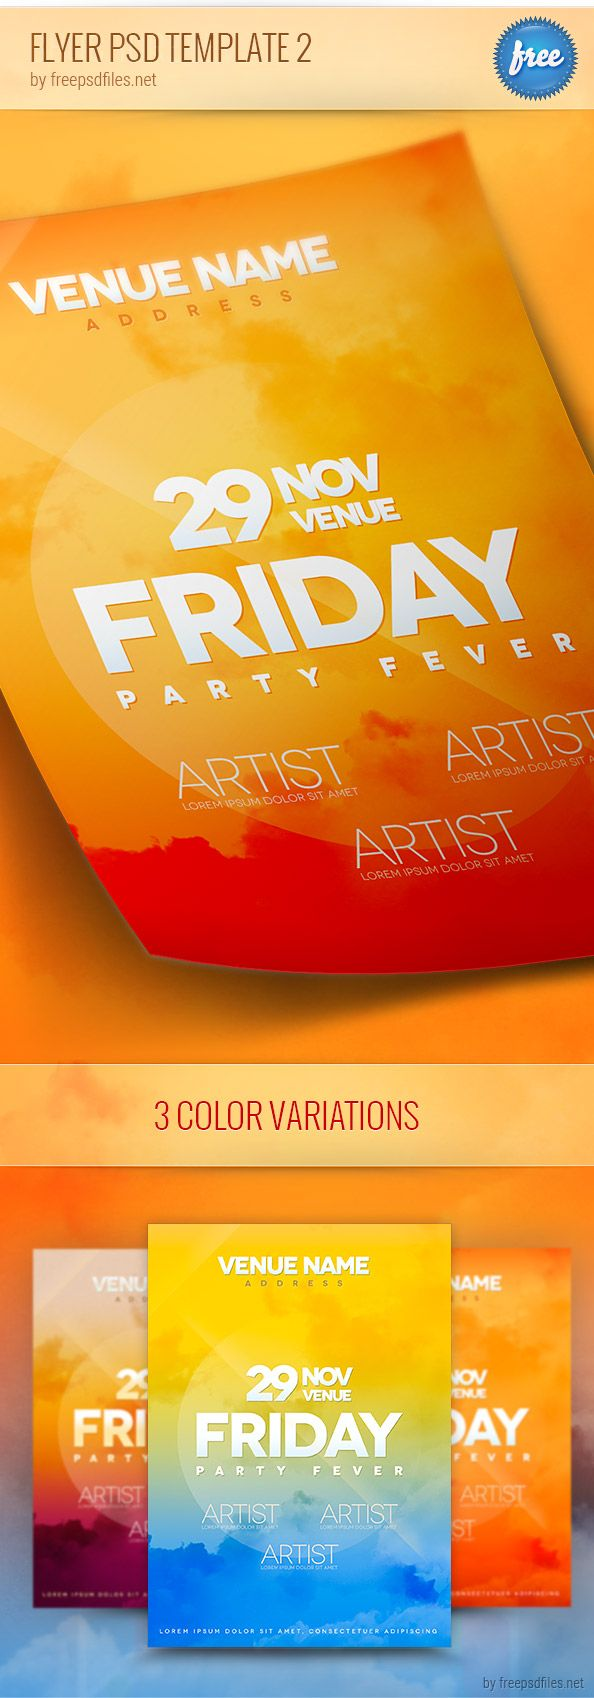 best images about flyers psd flyer templates flyer psd template designed in 3 different color schemes our psd flyer is suitable